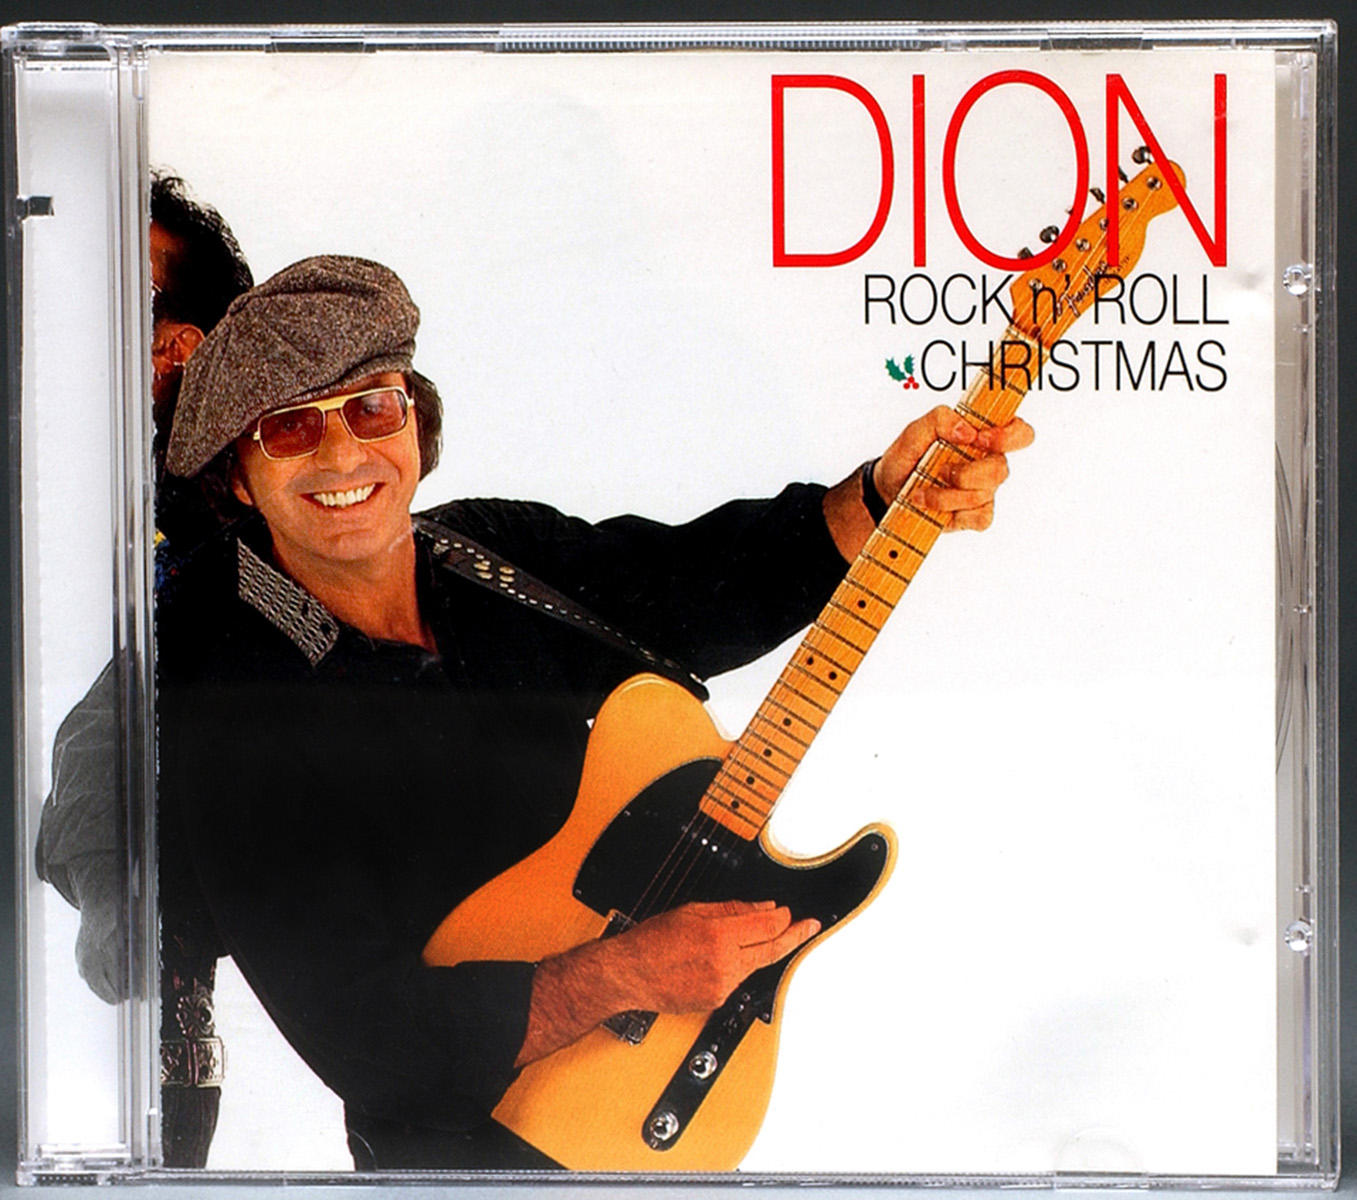 RCA Records: Dion's Christmas CD